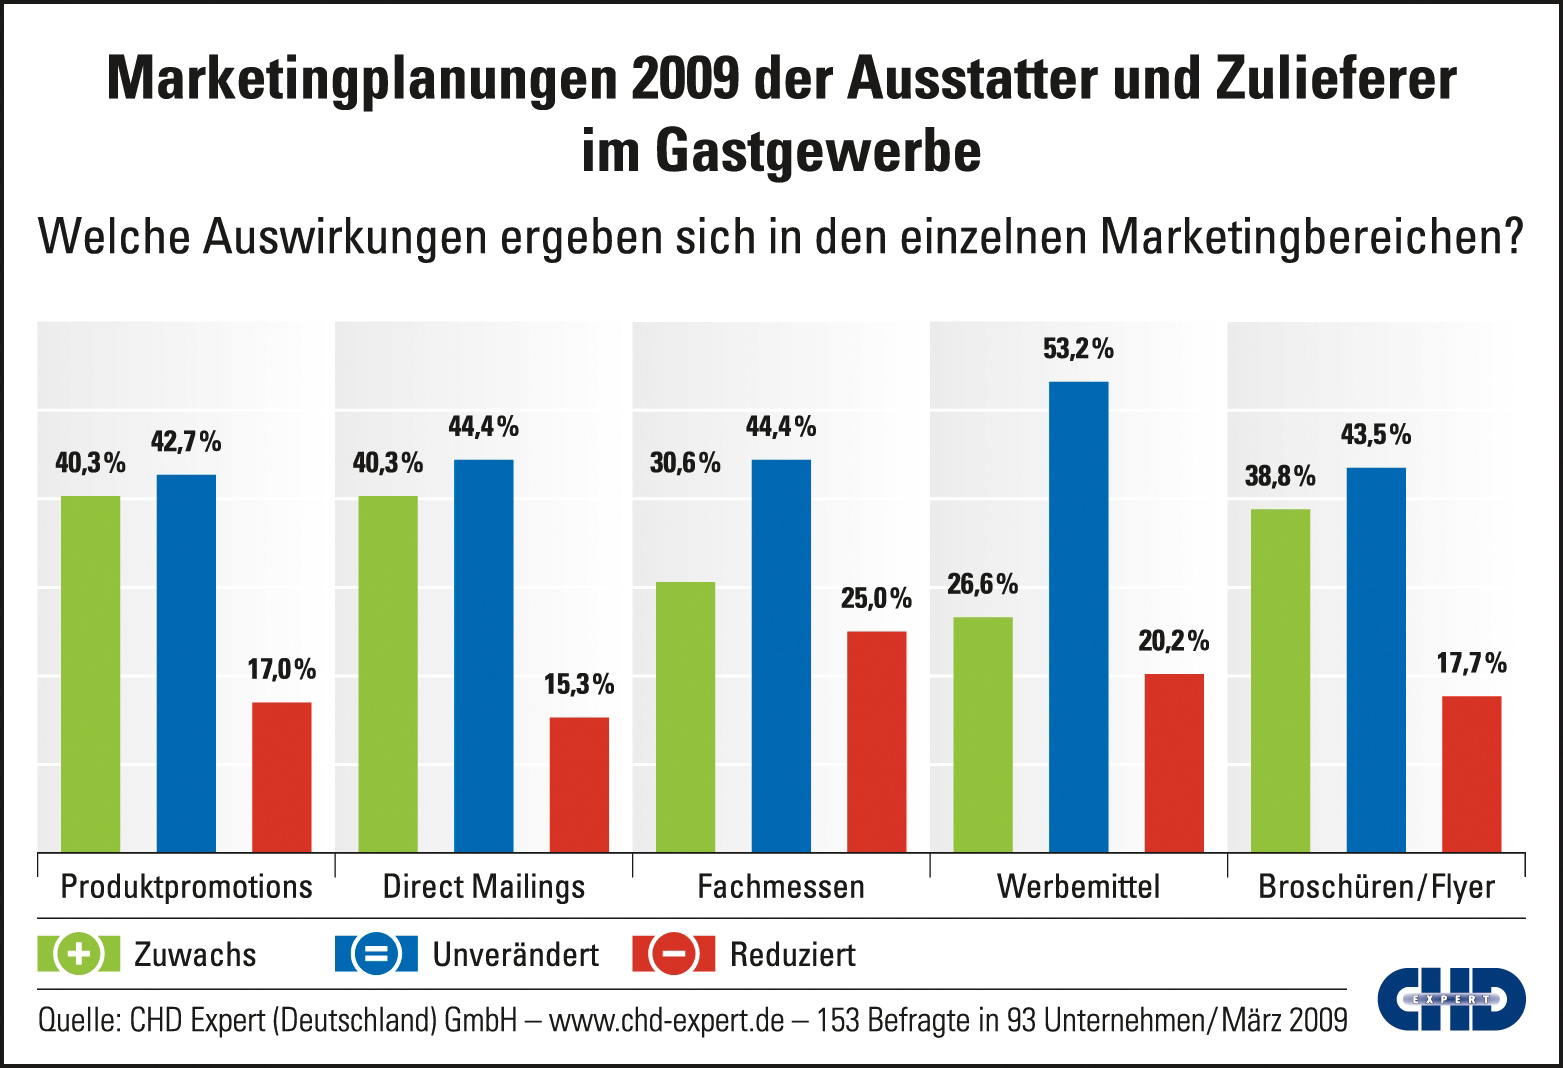 CHD Expert Grafik: Marketingplanungen Zulieferer HoReCa 2009